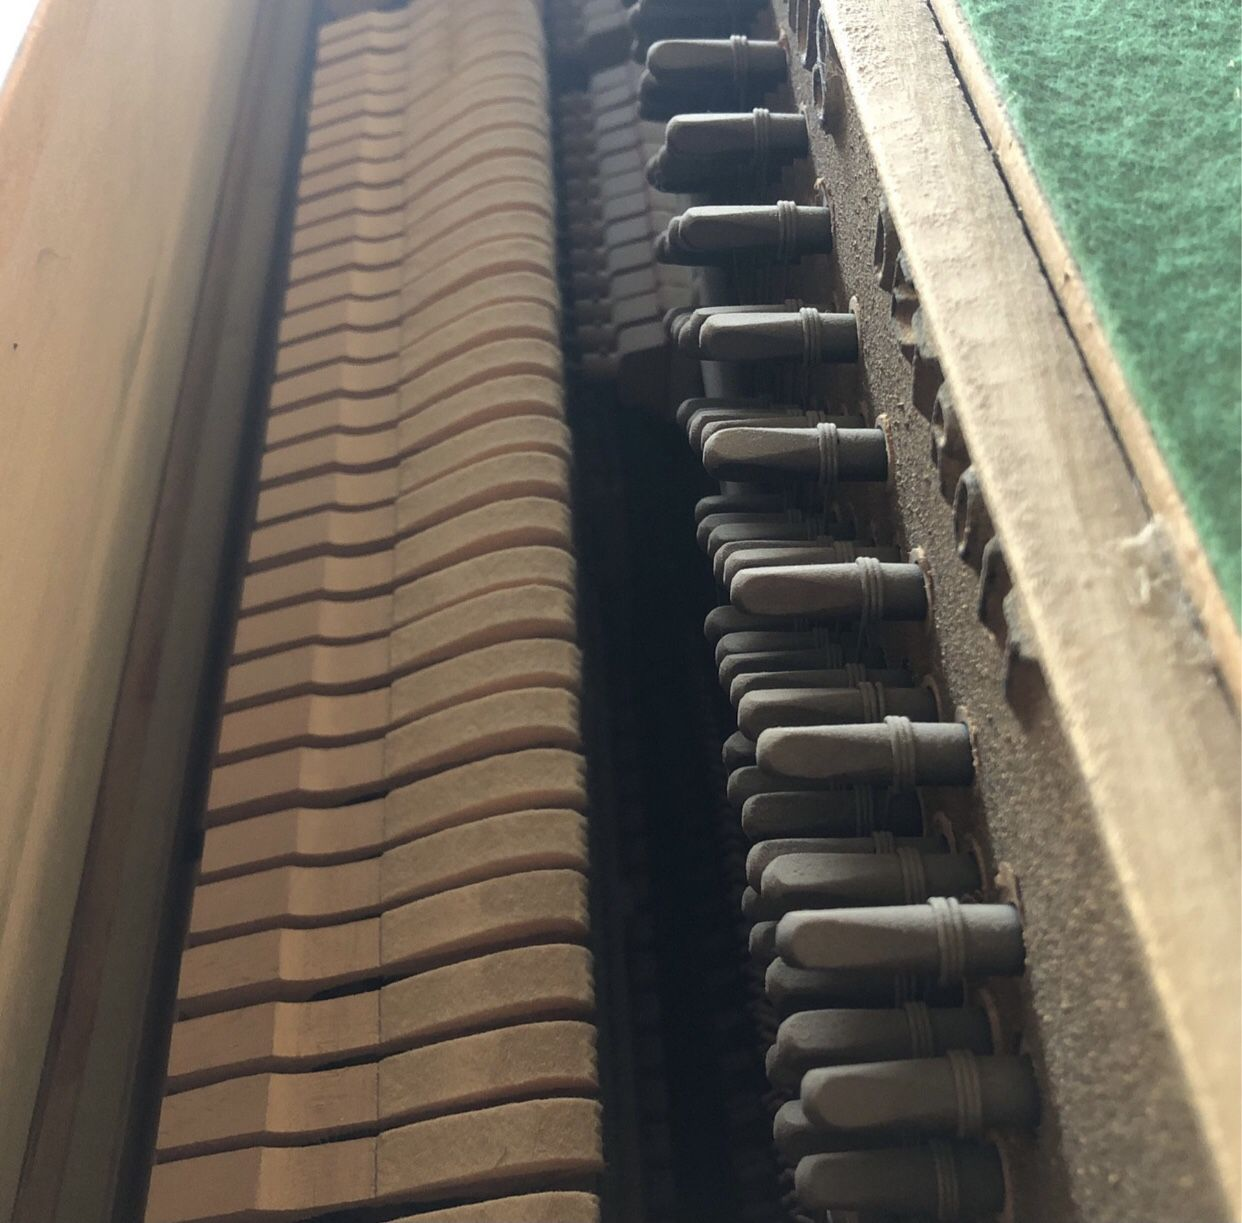 Grinnell Bros. Console Upright Piano